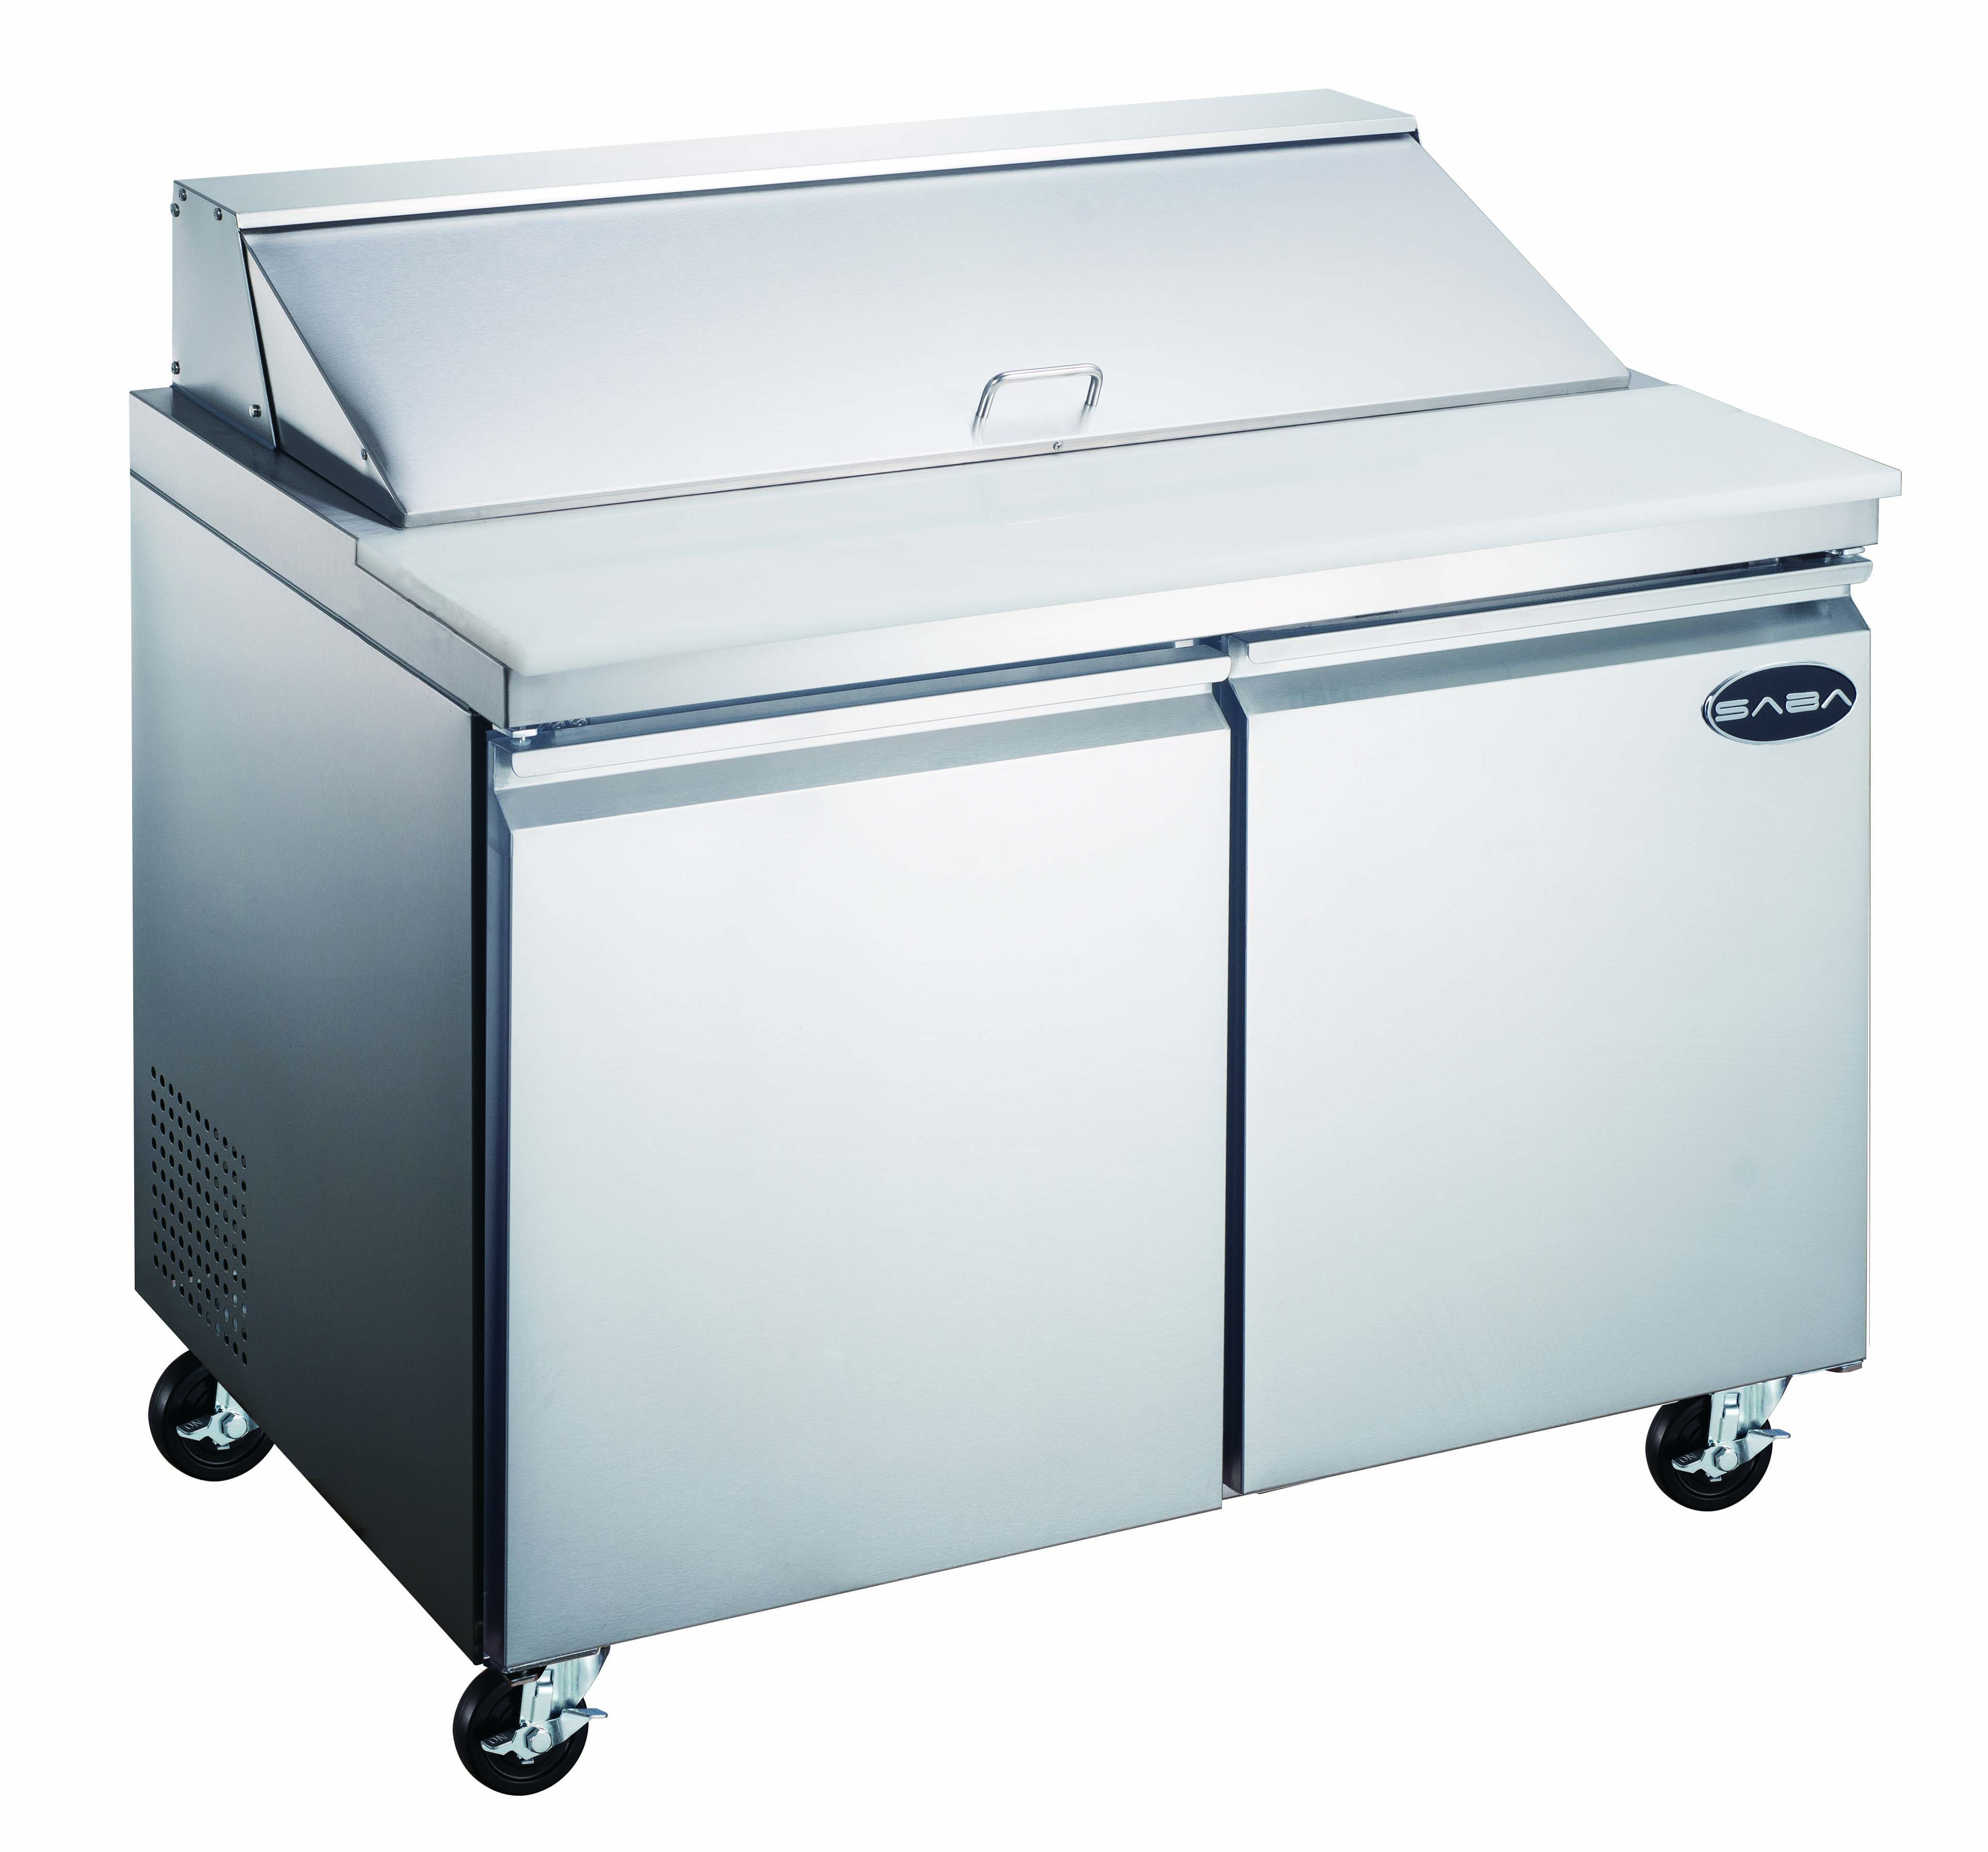 "Heavy Duty Commercial 48"" (2 Door) Sandwich/Salad Prep Table Refrigerator"